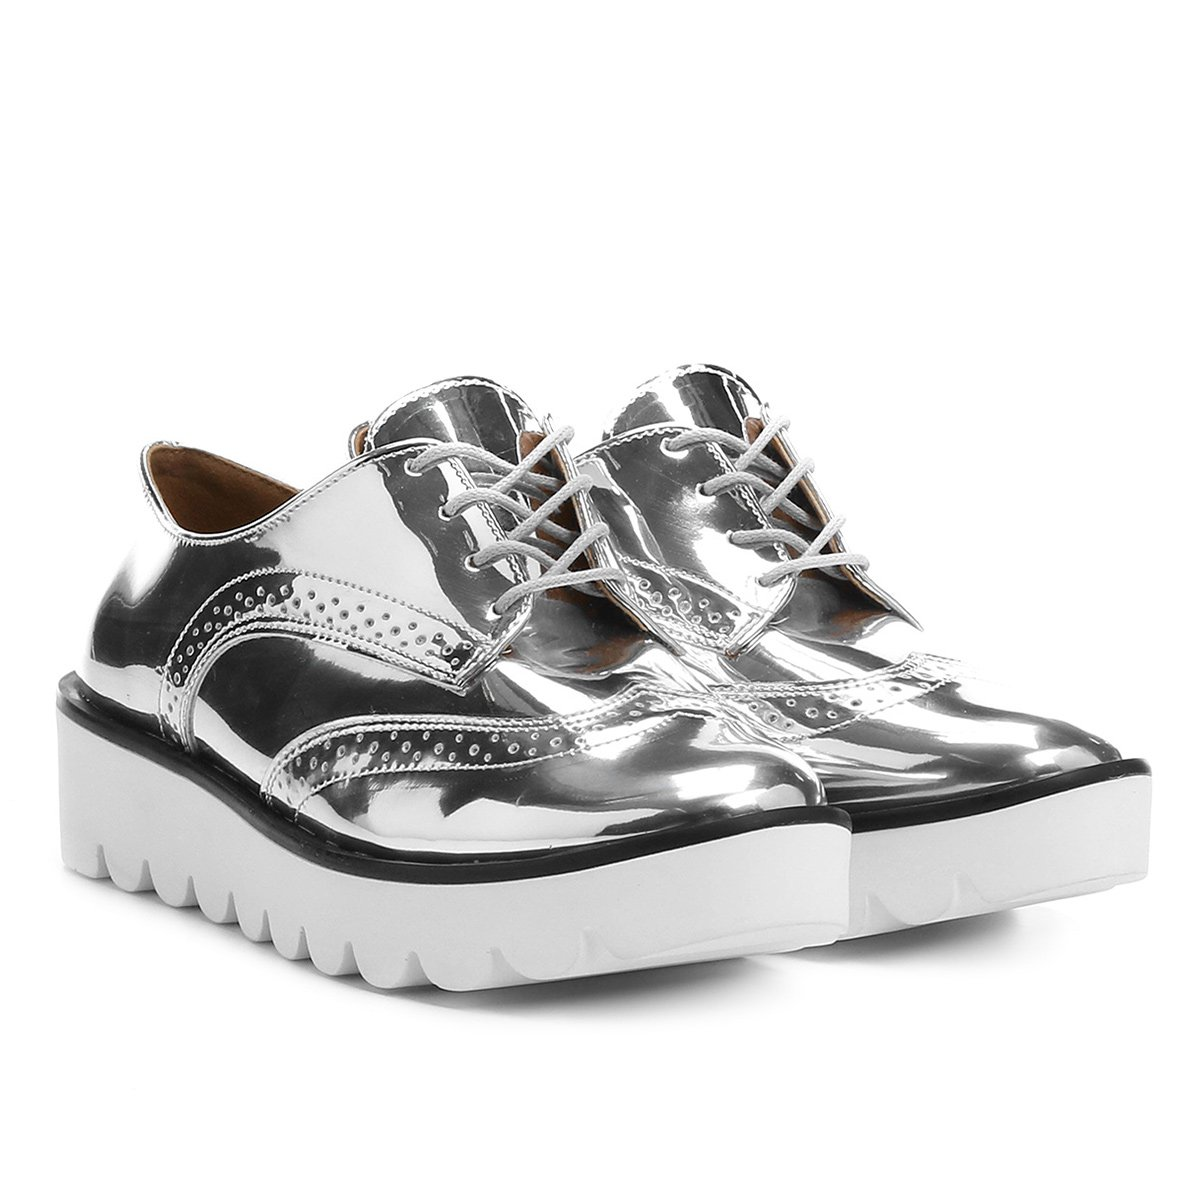 Oxford Zatz Flatform Brogues